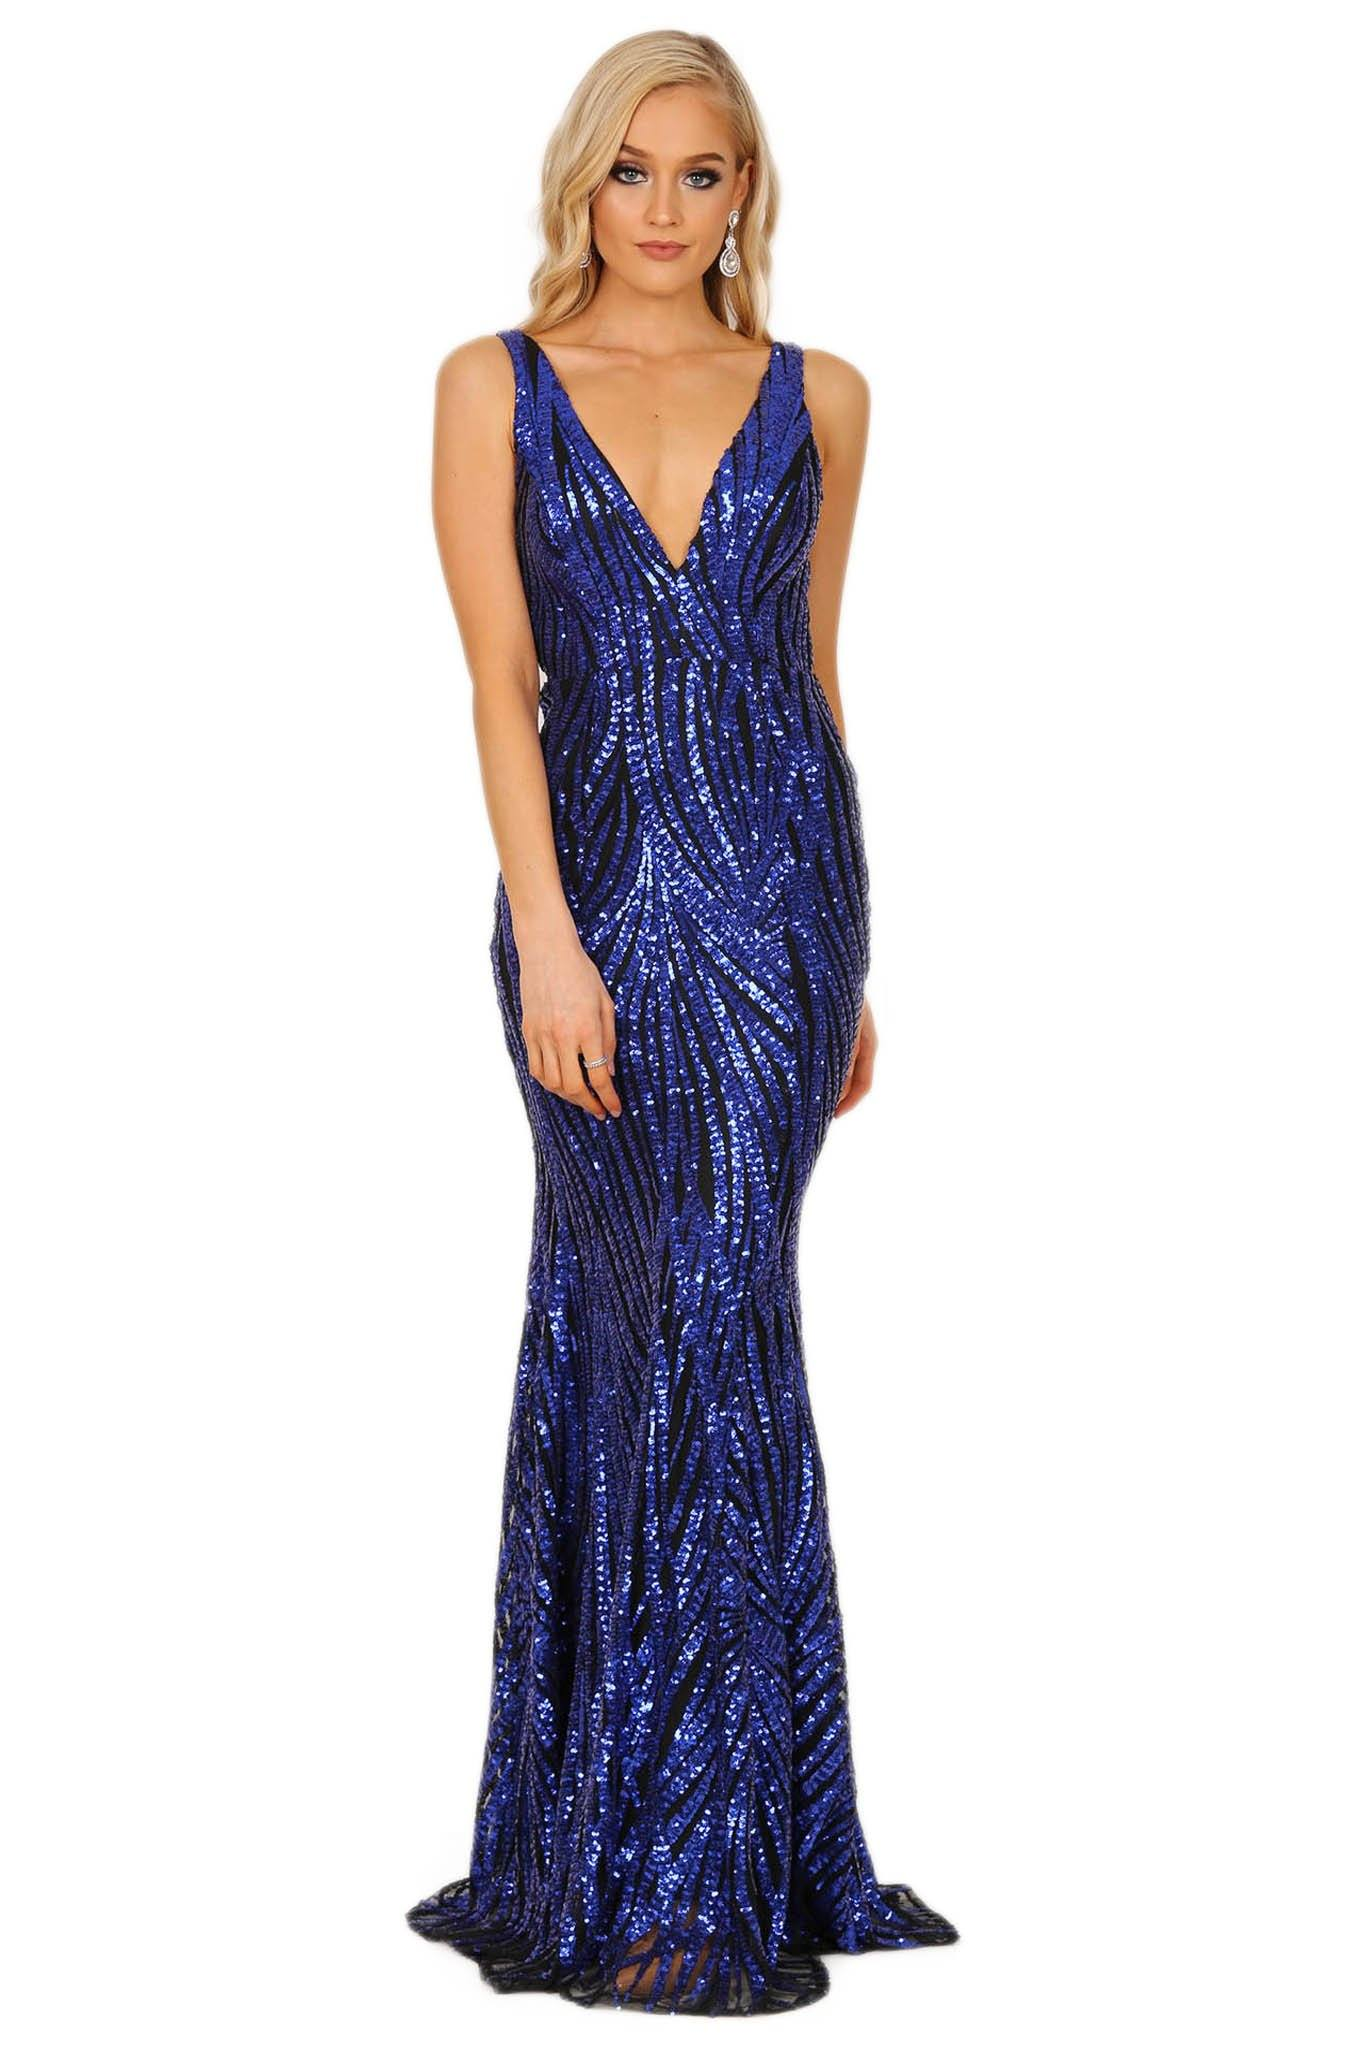 0d6653231c Royal Blue Floor Length Formal Sequin Gown with Wavy Stripes of Embroidered  Royal Blue Sequins on